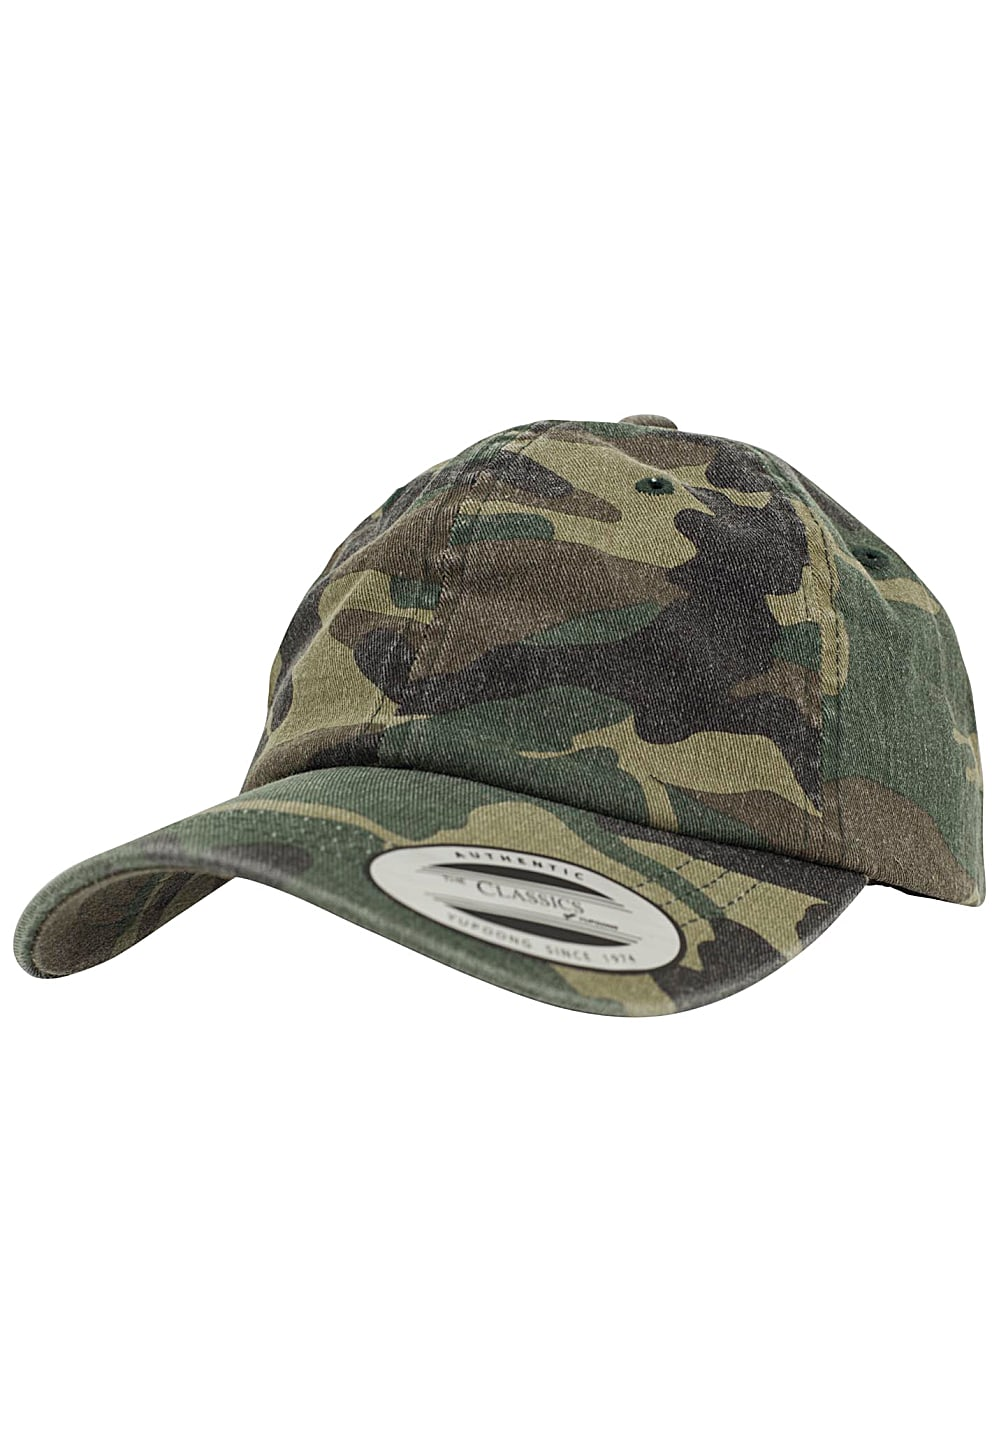 Flexfit Low Profile Camo Washed Flexfit Cap - Camouflage - OneSize